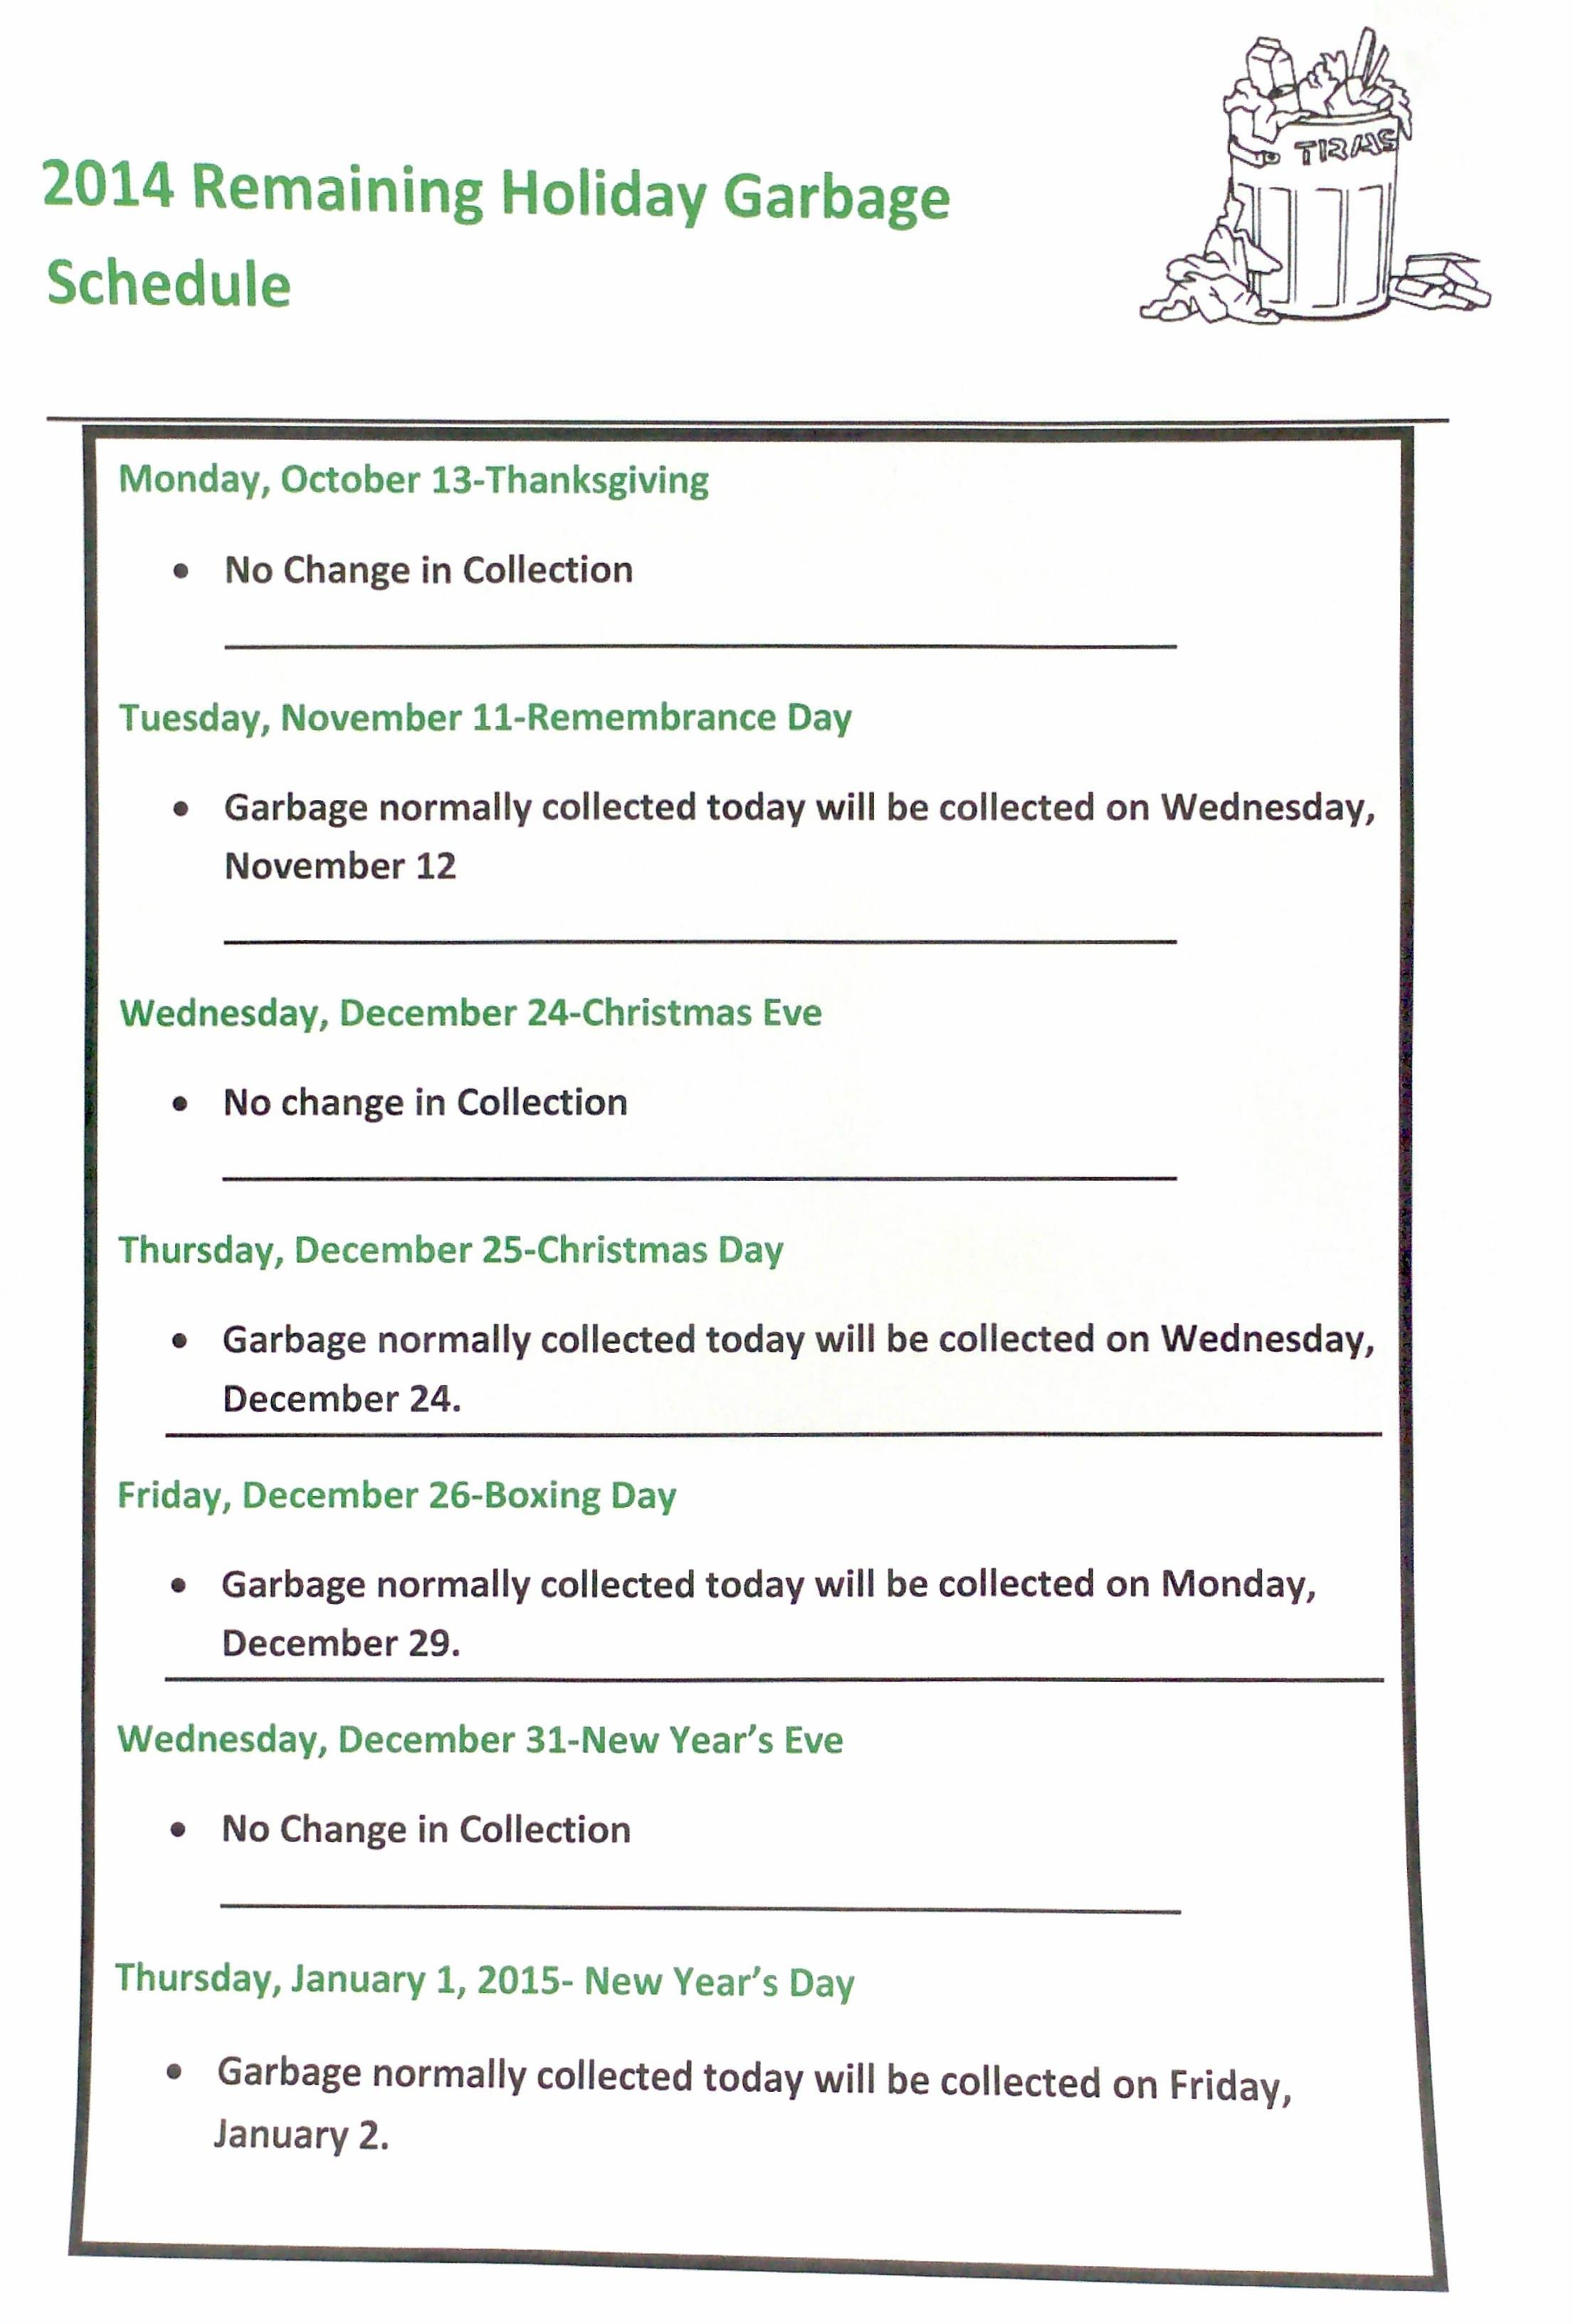 Garbage Collection Holiday Schedule 2014